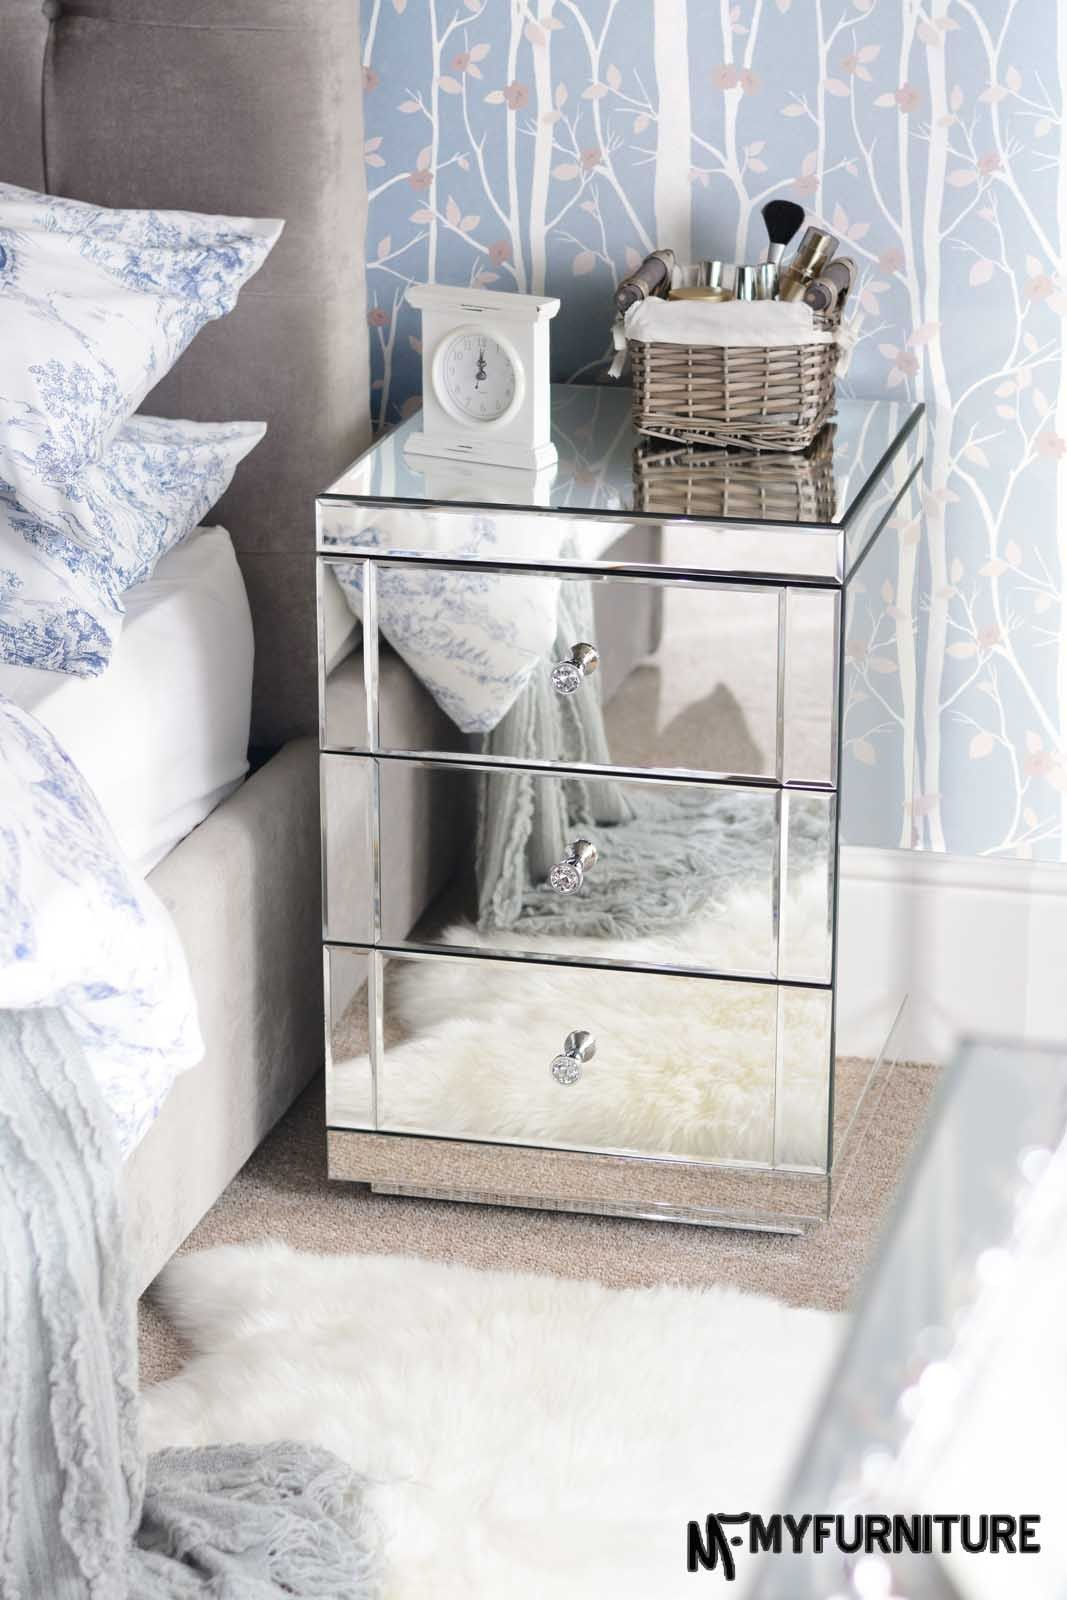 Glass Bedroom Furniture amazing pictures. Glass Bedroom Furniture amazing pictures   A1houston com